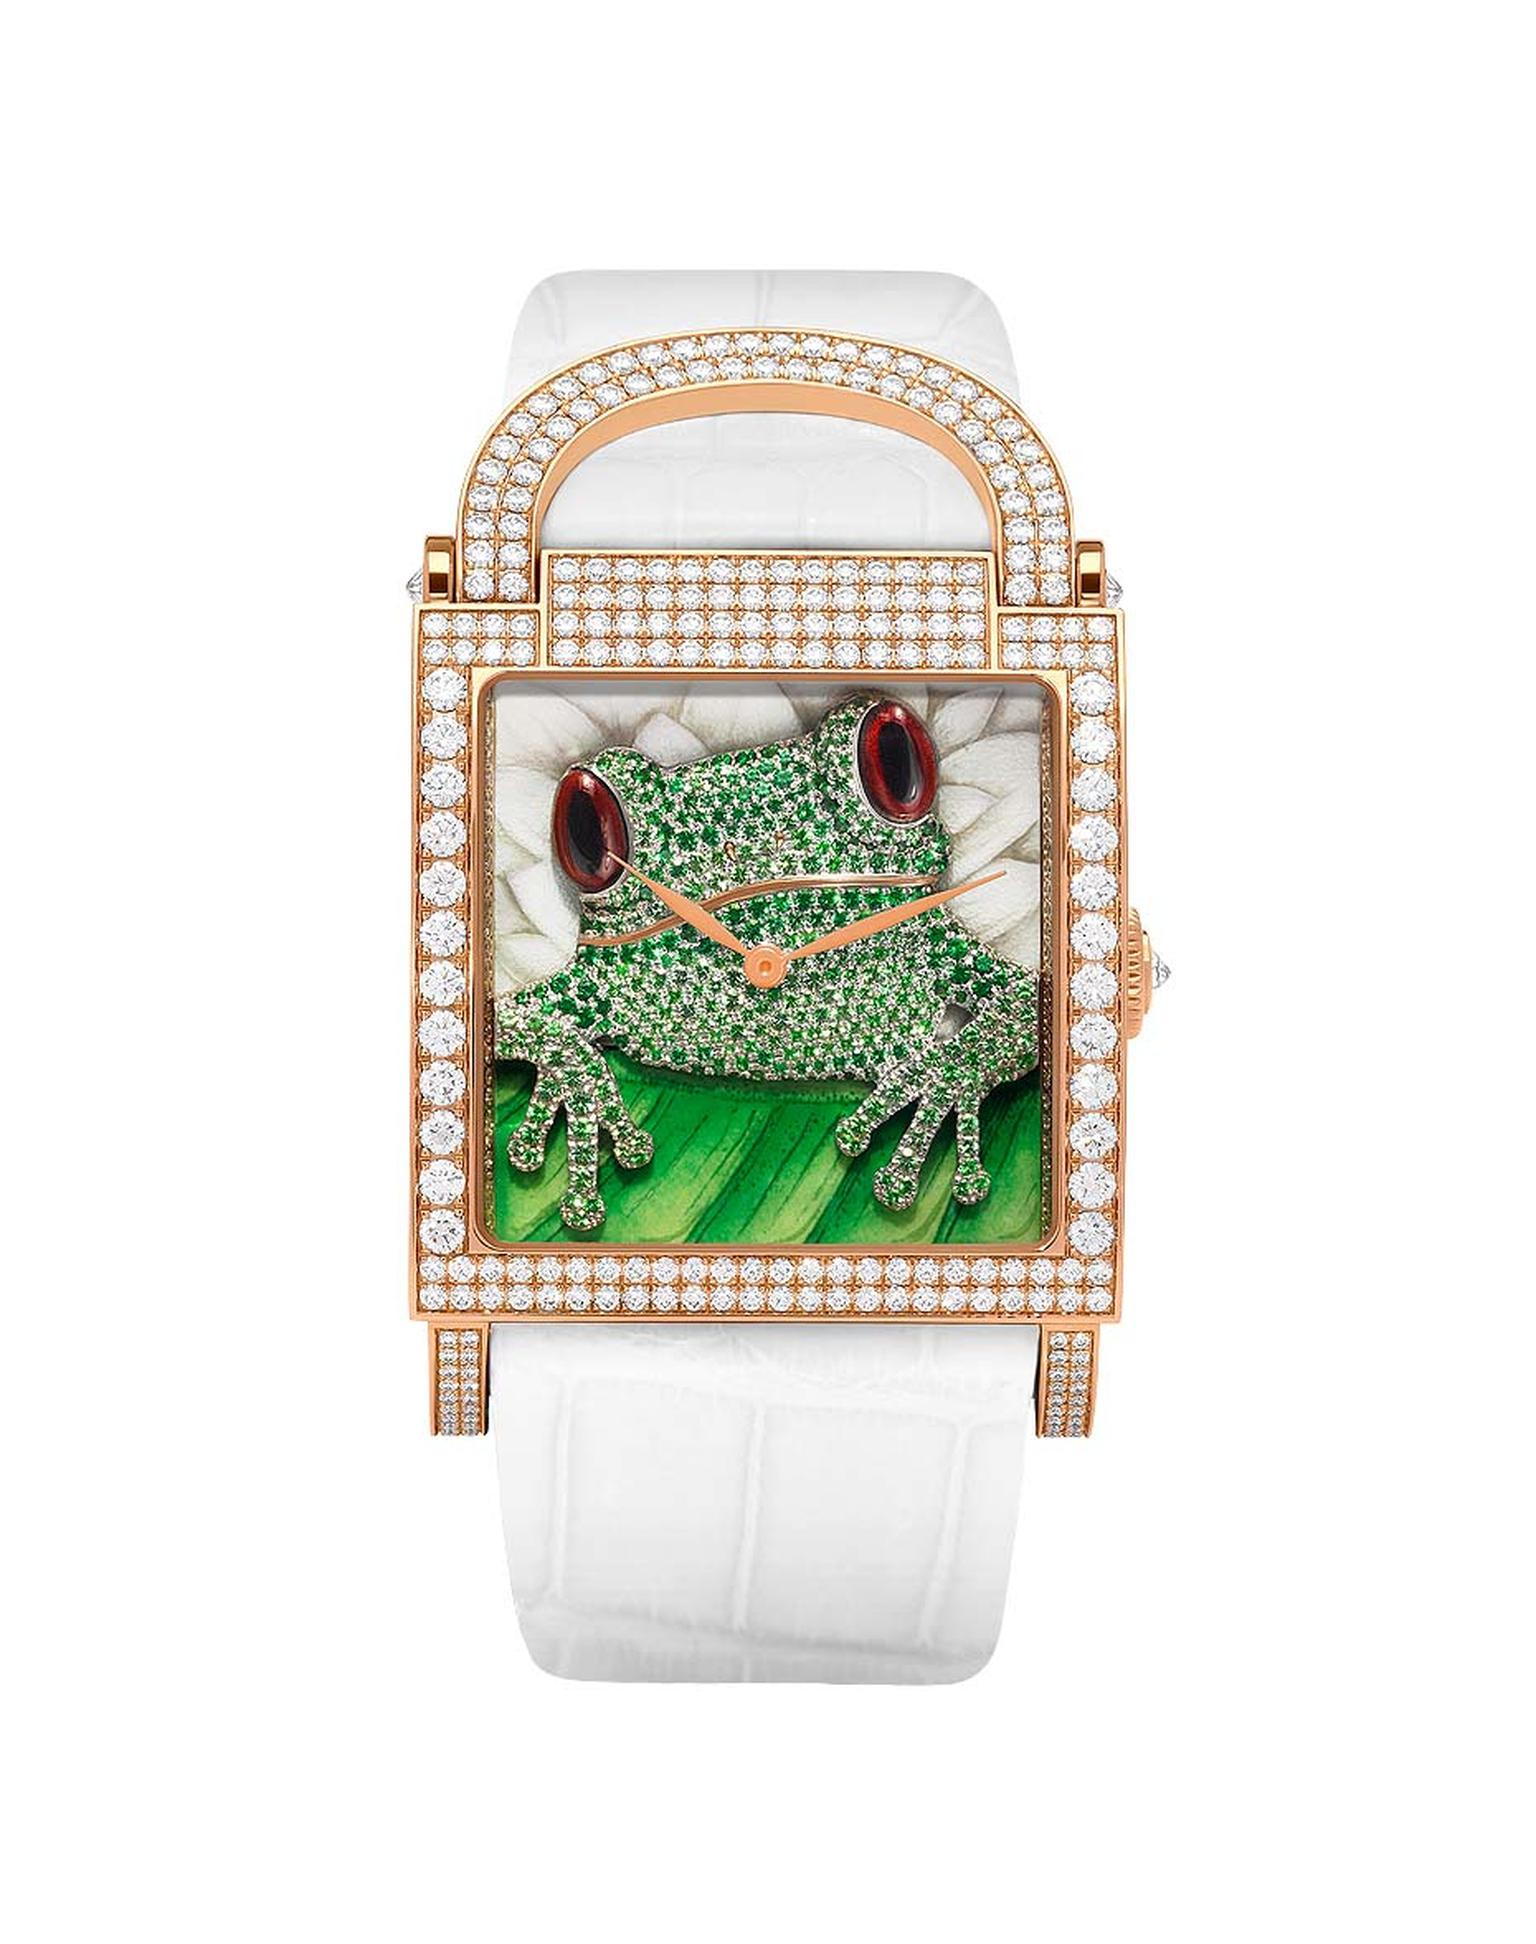 DeLaneau's one-of-a-kind Dôme Frog watch.